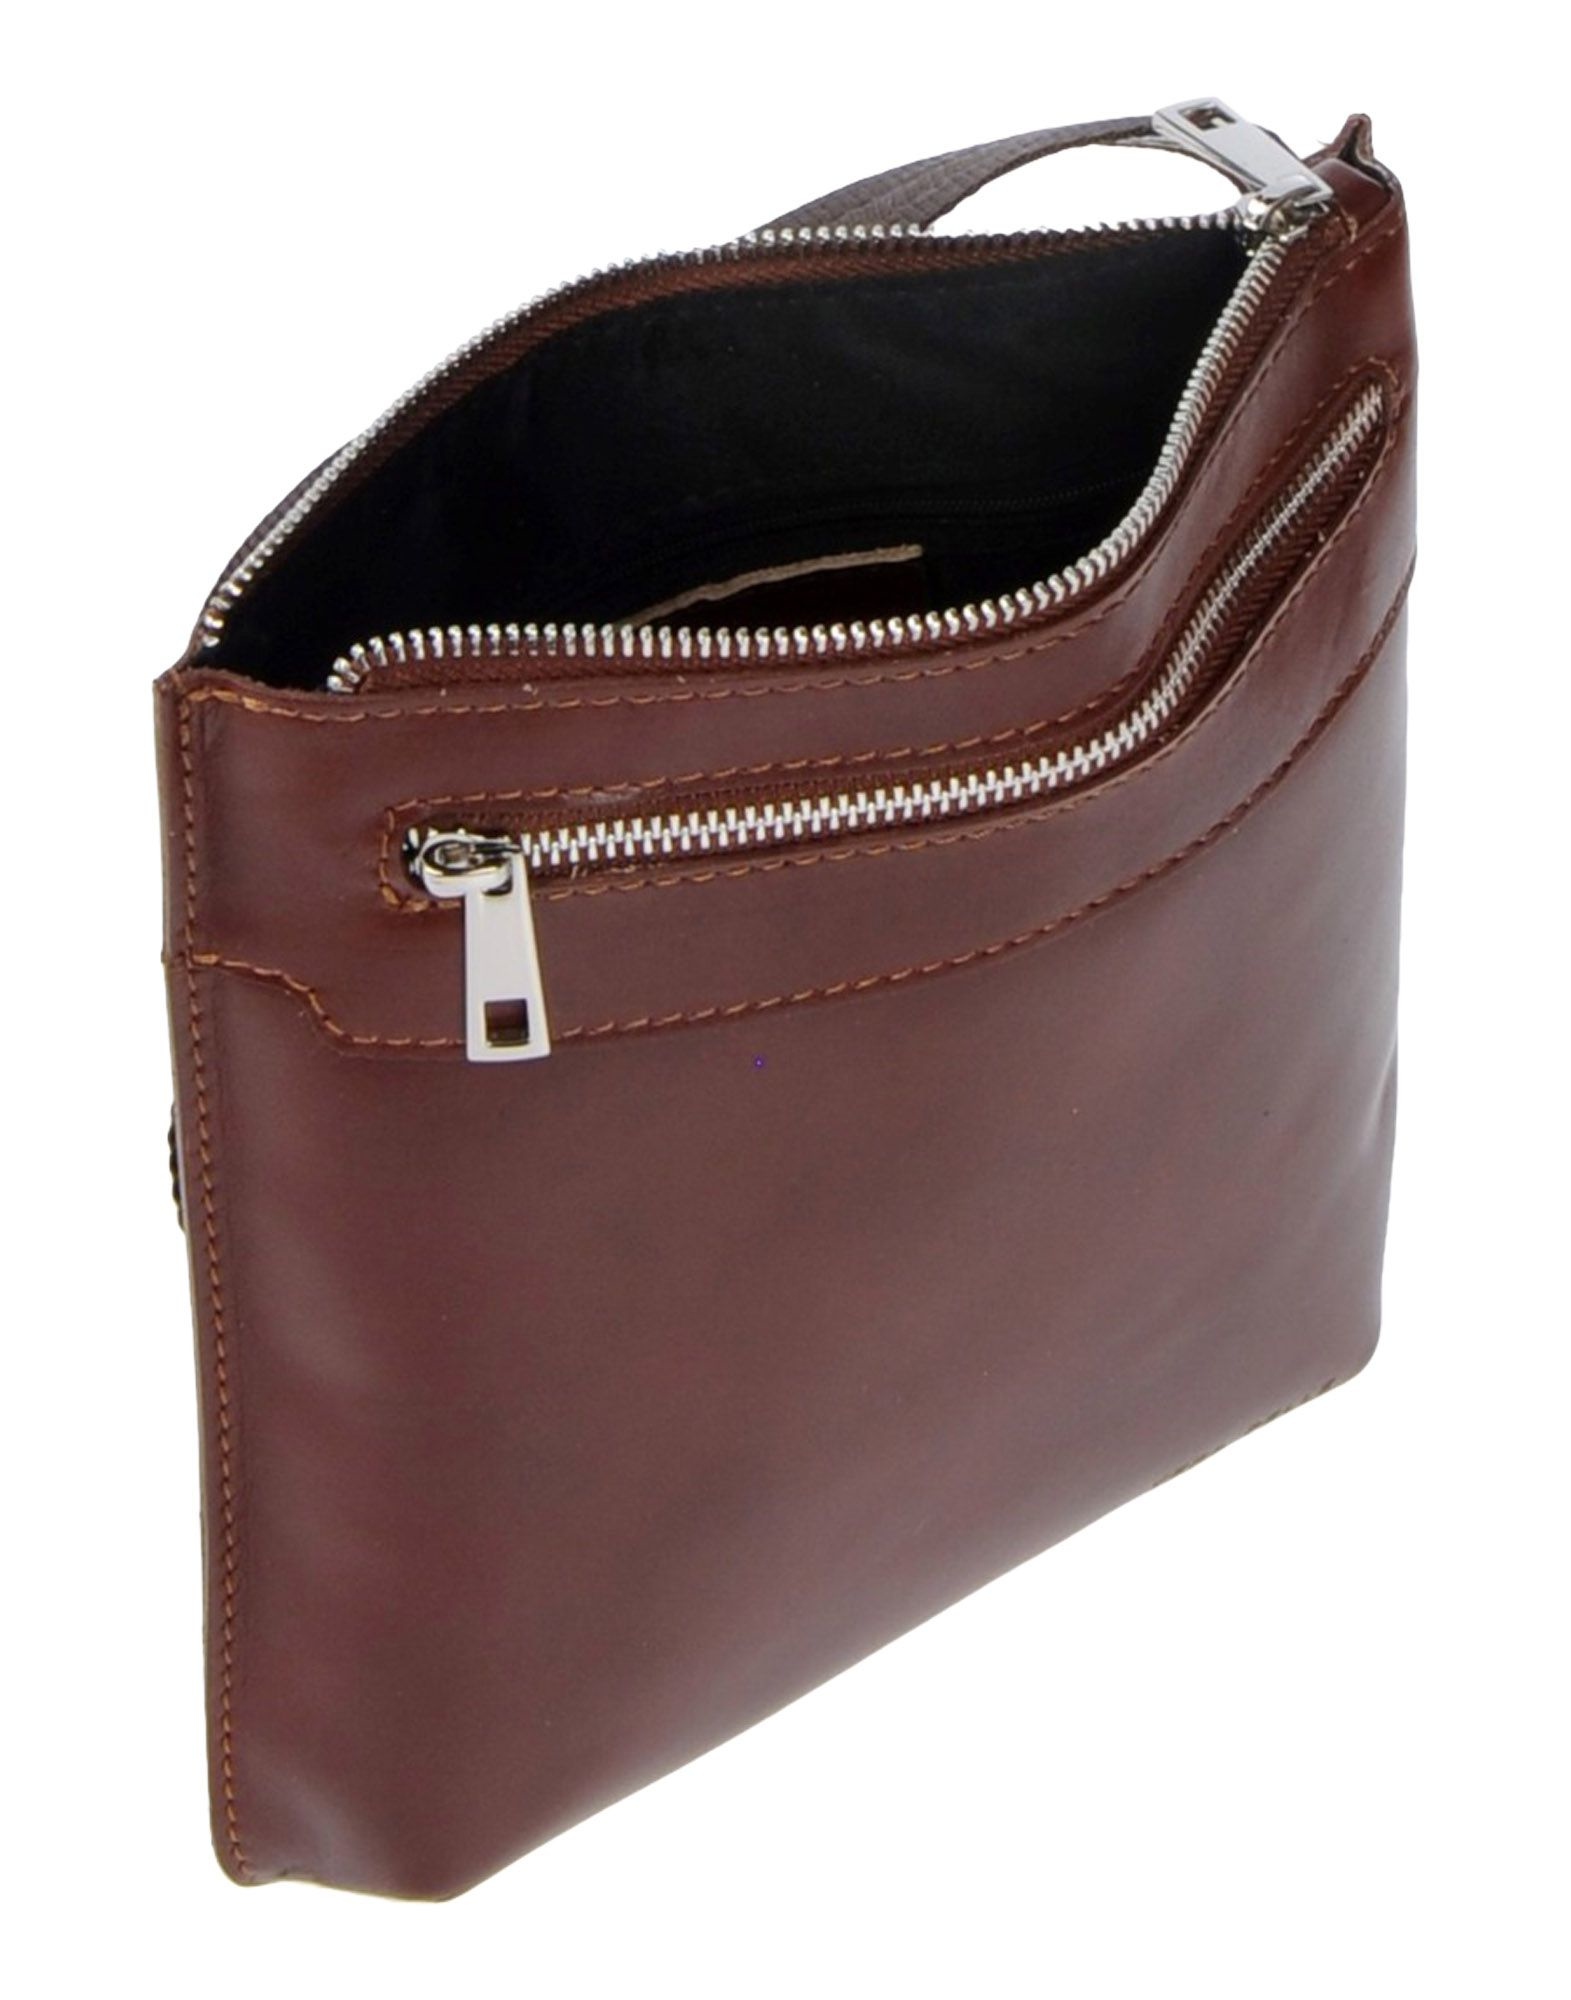 Ore10 Leather Cross-body Bag in Brown